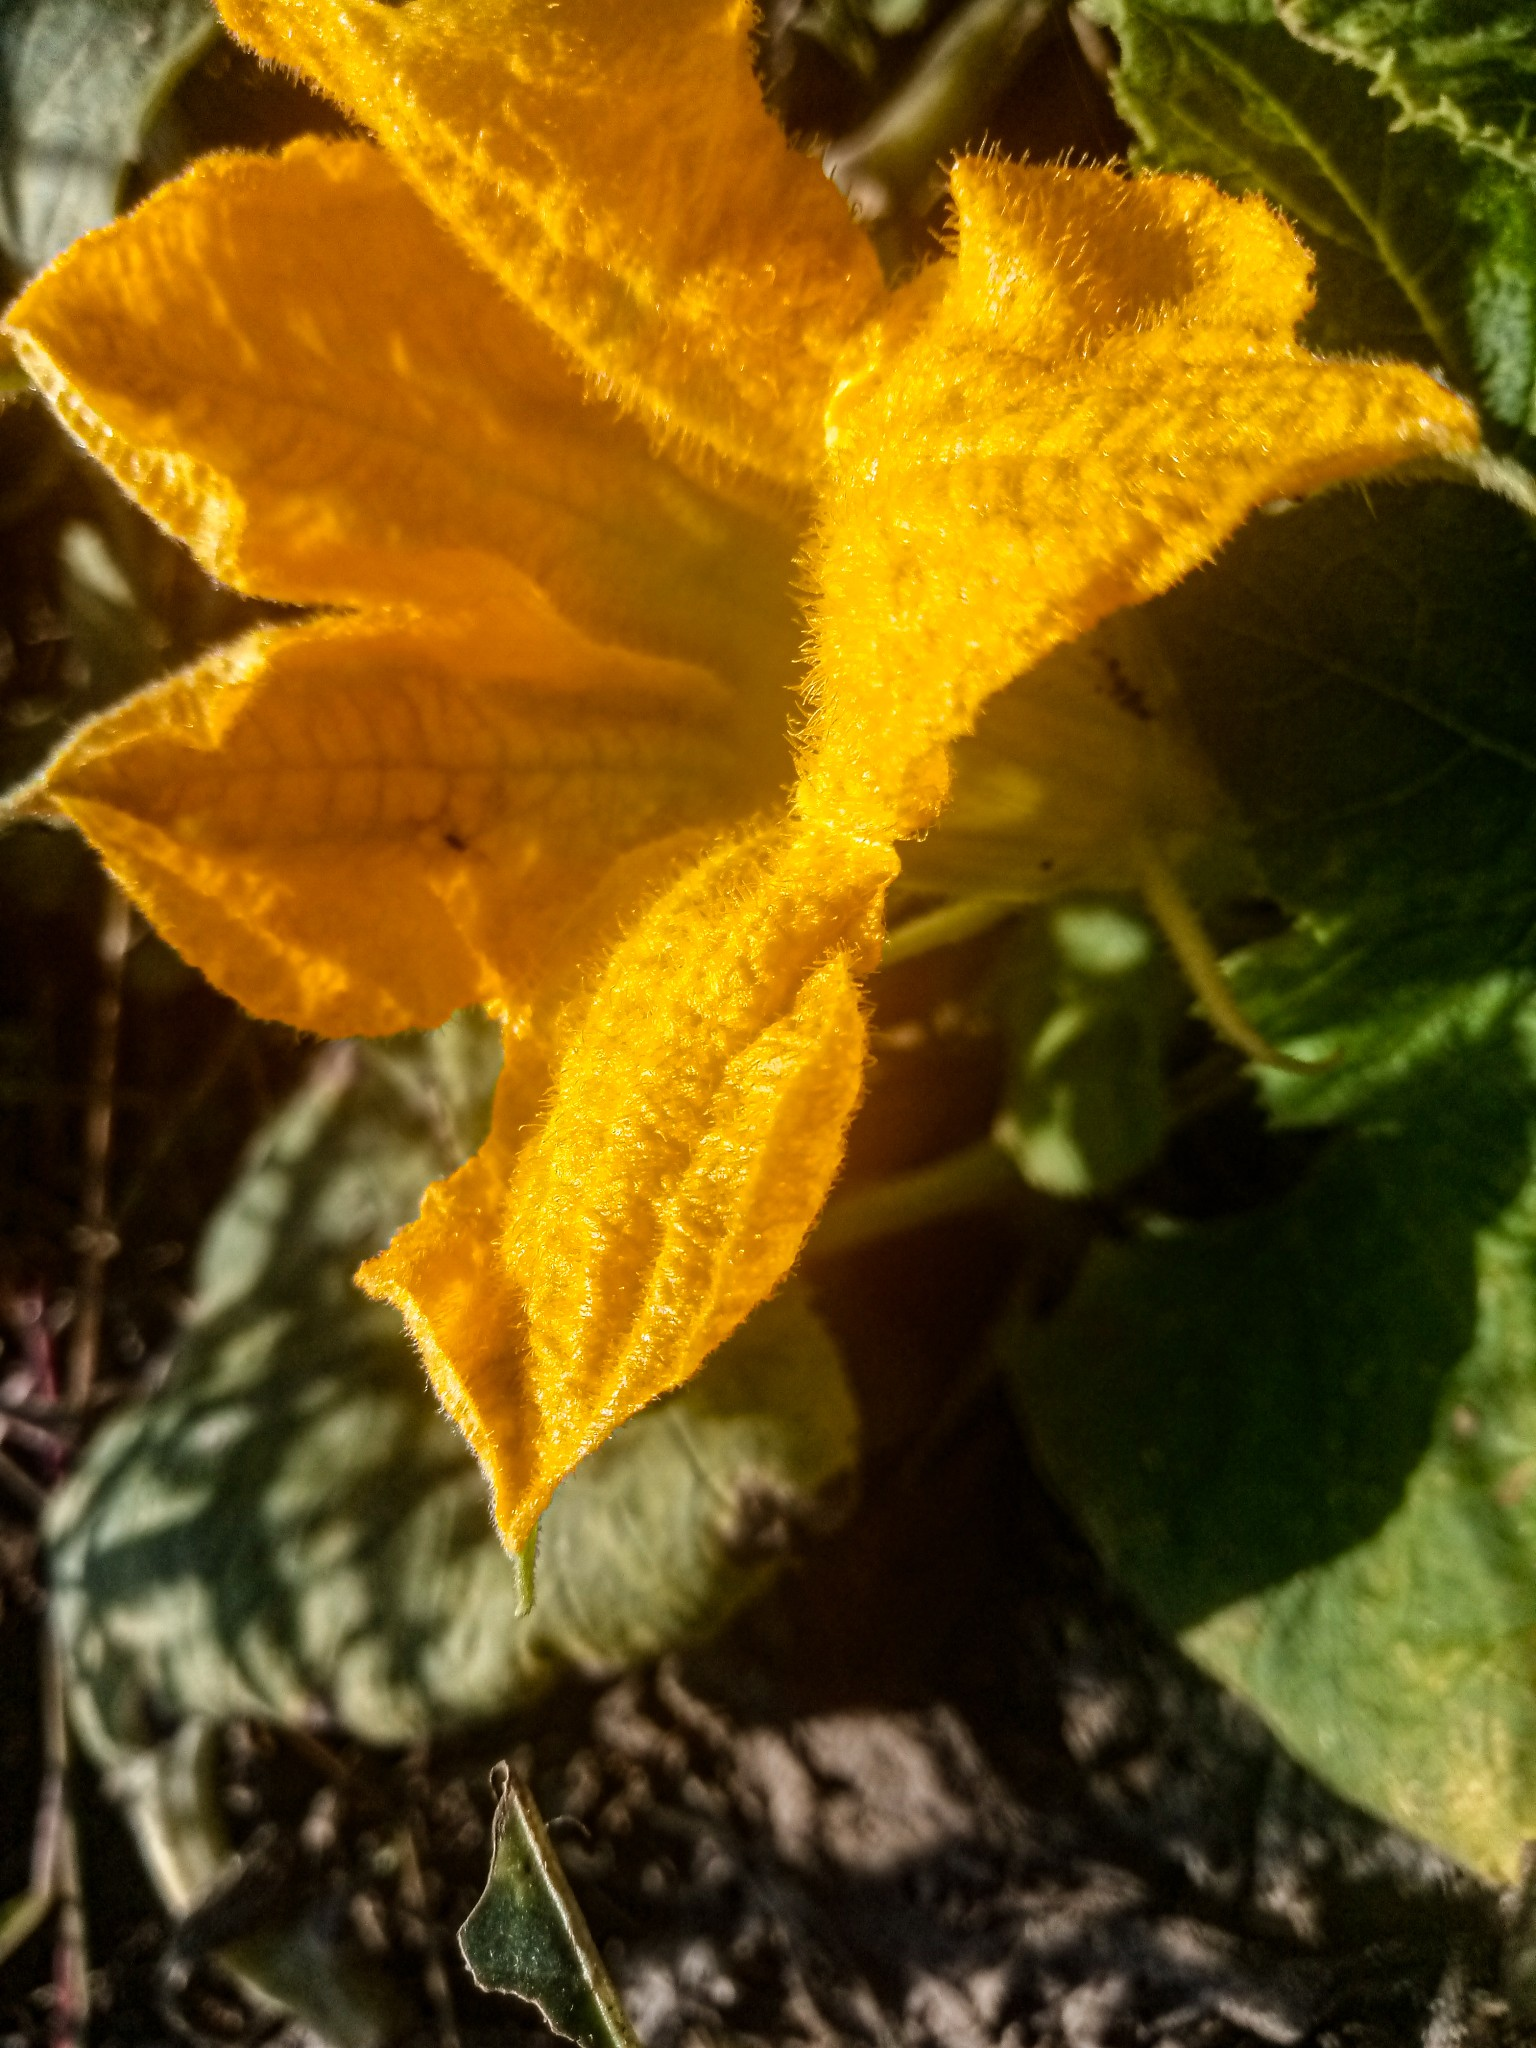 Pumpkin flowers photo 11